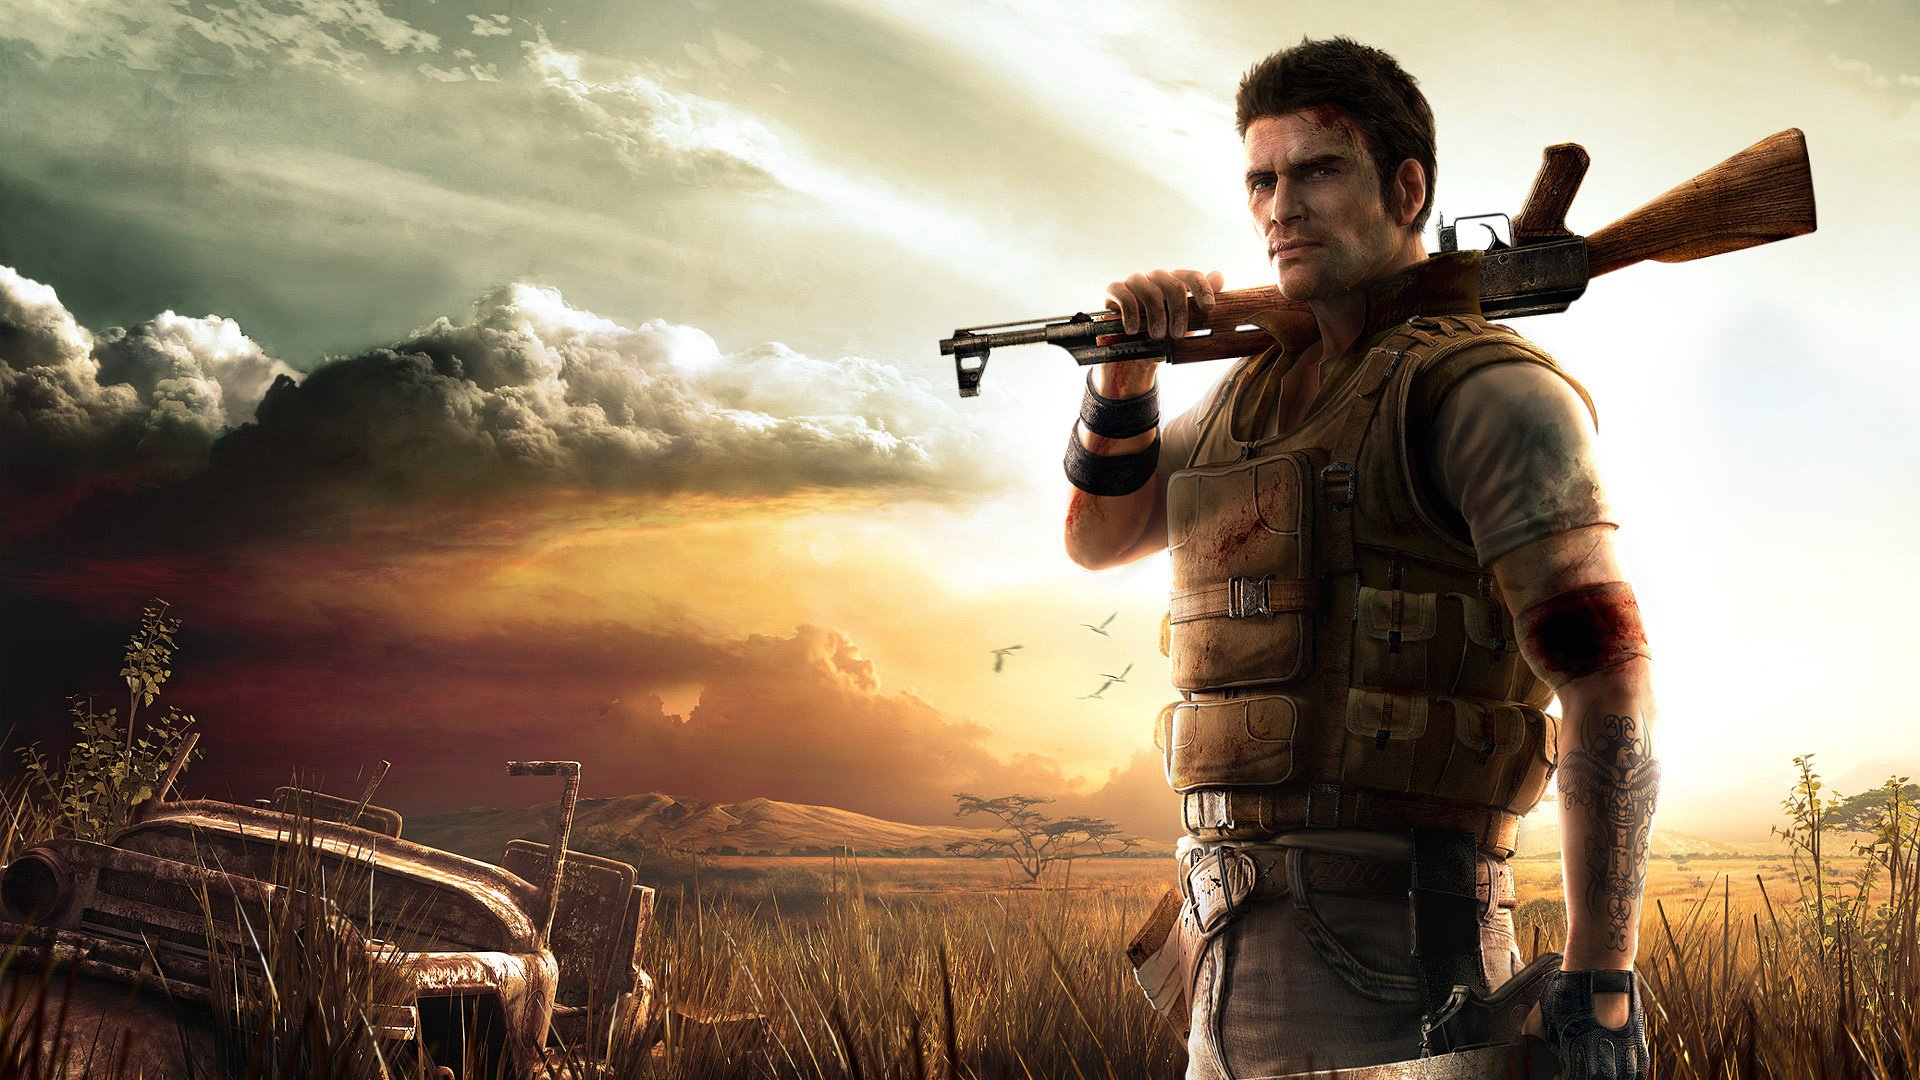 Far Cry 2 Hd Wallpaper Background Image 1920x1080 Id 255236